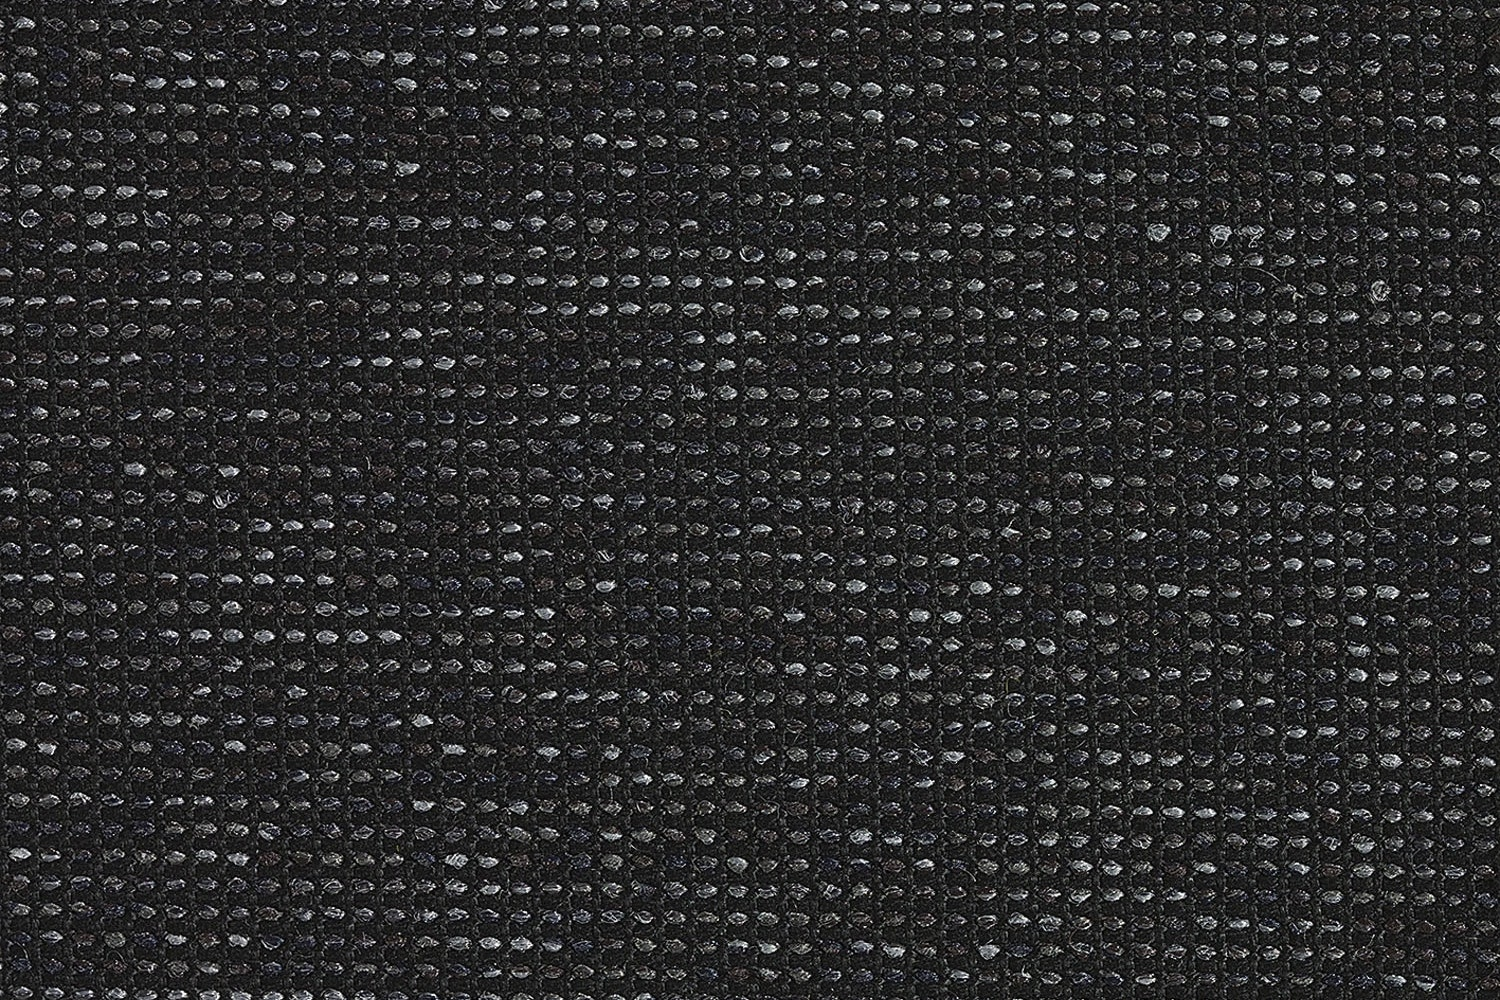 Tom Woven Wall-to-Wall Carpet by Petra Lundblad-Friden for Kasthall